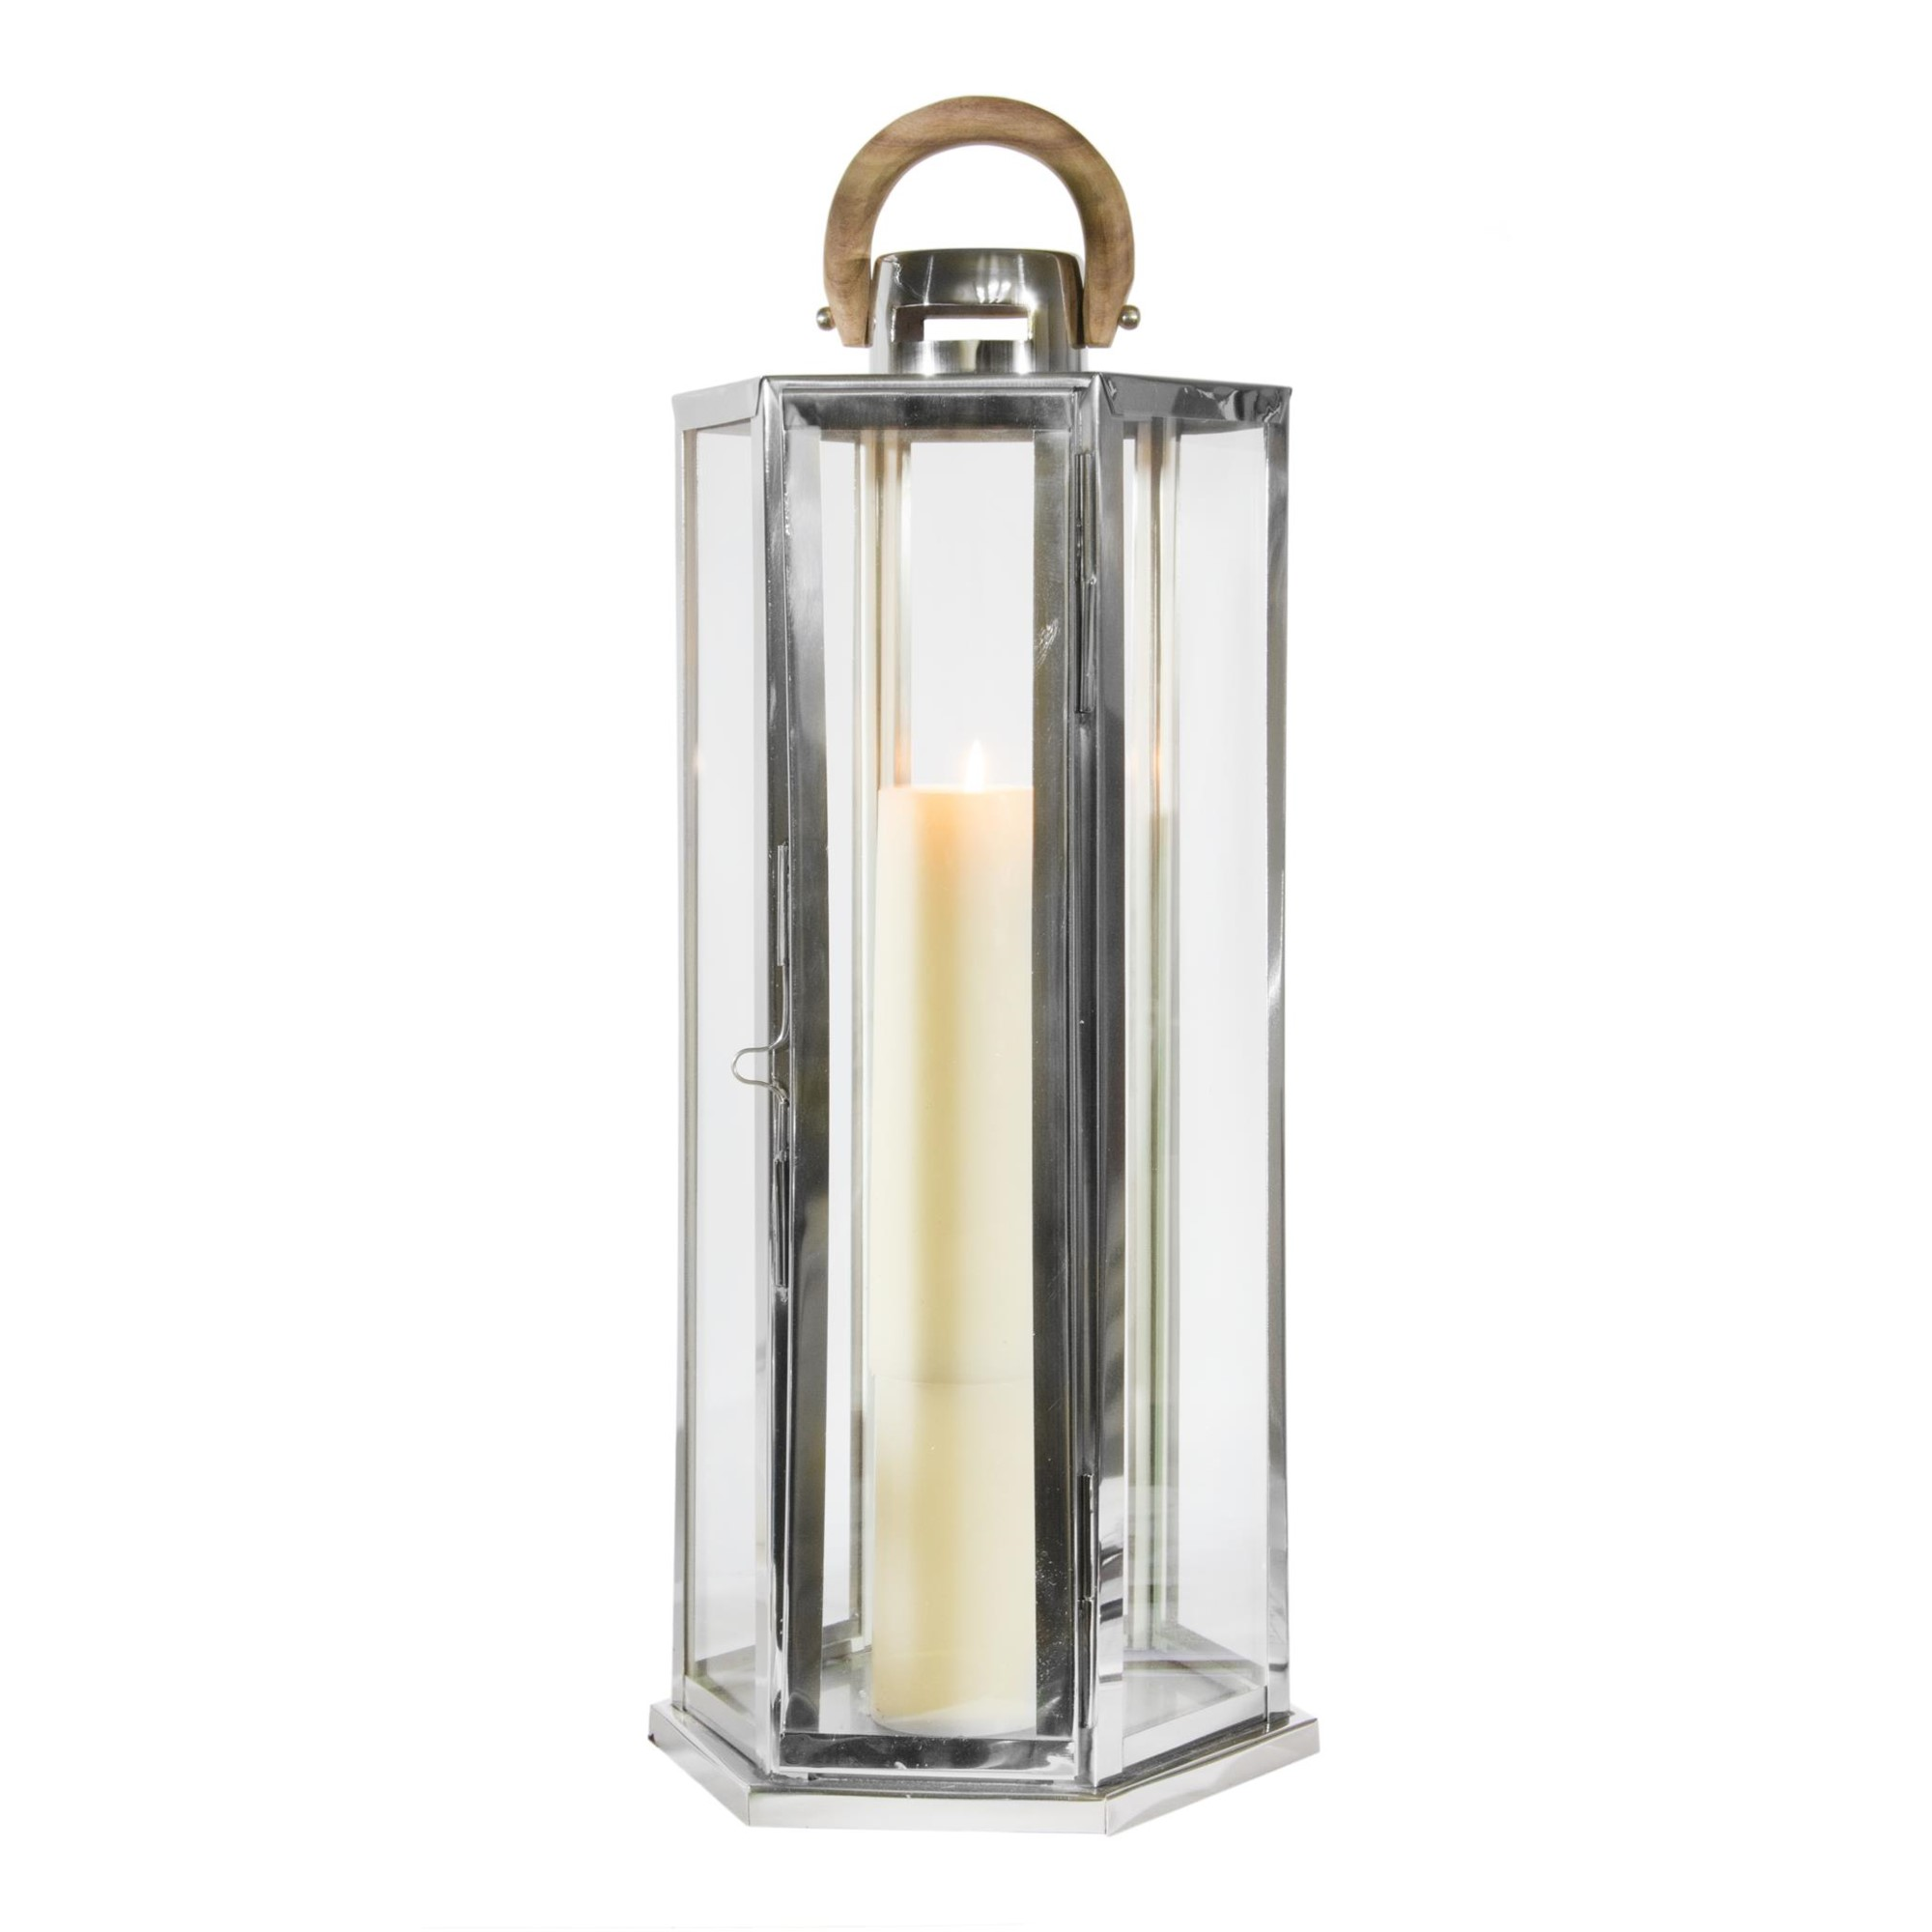 Stainless Steel & Glass Lantern with Wood Handle by S&C, Amanda's House Of Elegance  ($178.95)